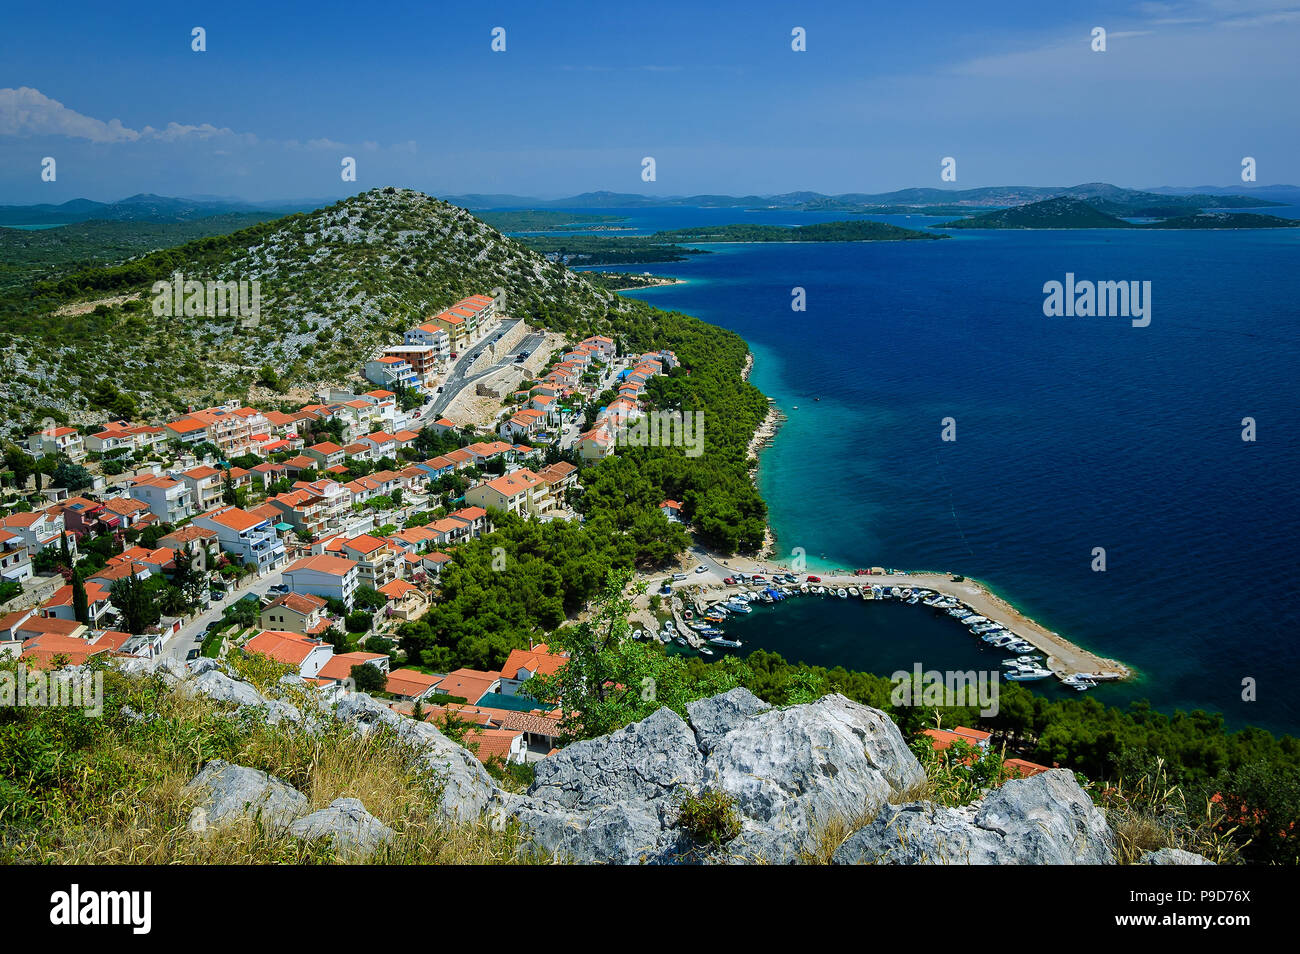 Amazing Kornati archipelago of Croatia. Northern part of Dalmatia. Sunny detail of Drage town. Beautiful summer seascape with clear water from Zadar t - Stock Image